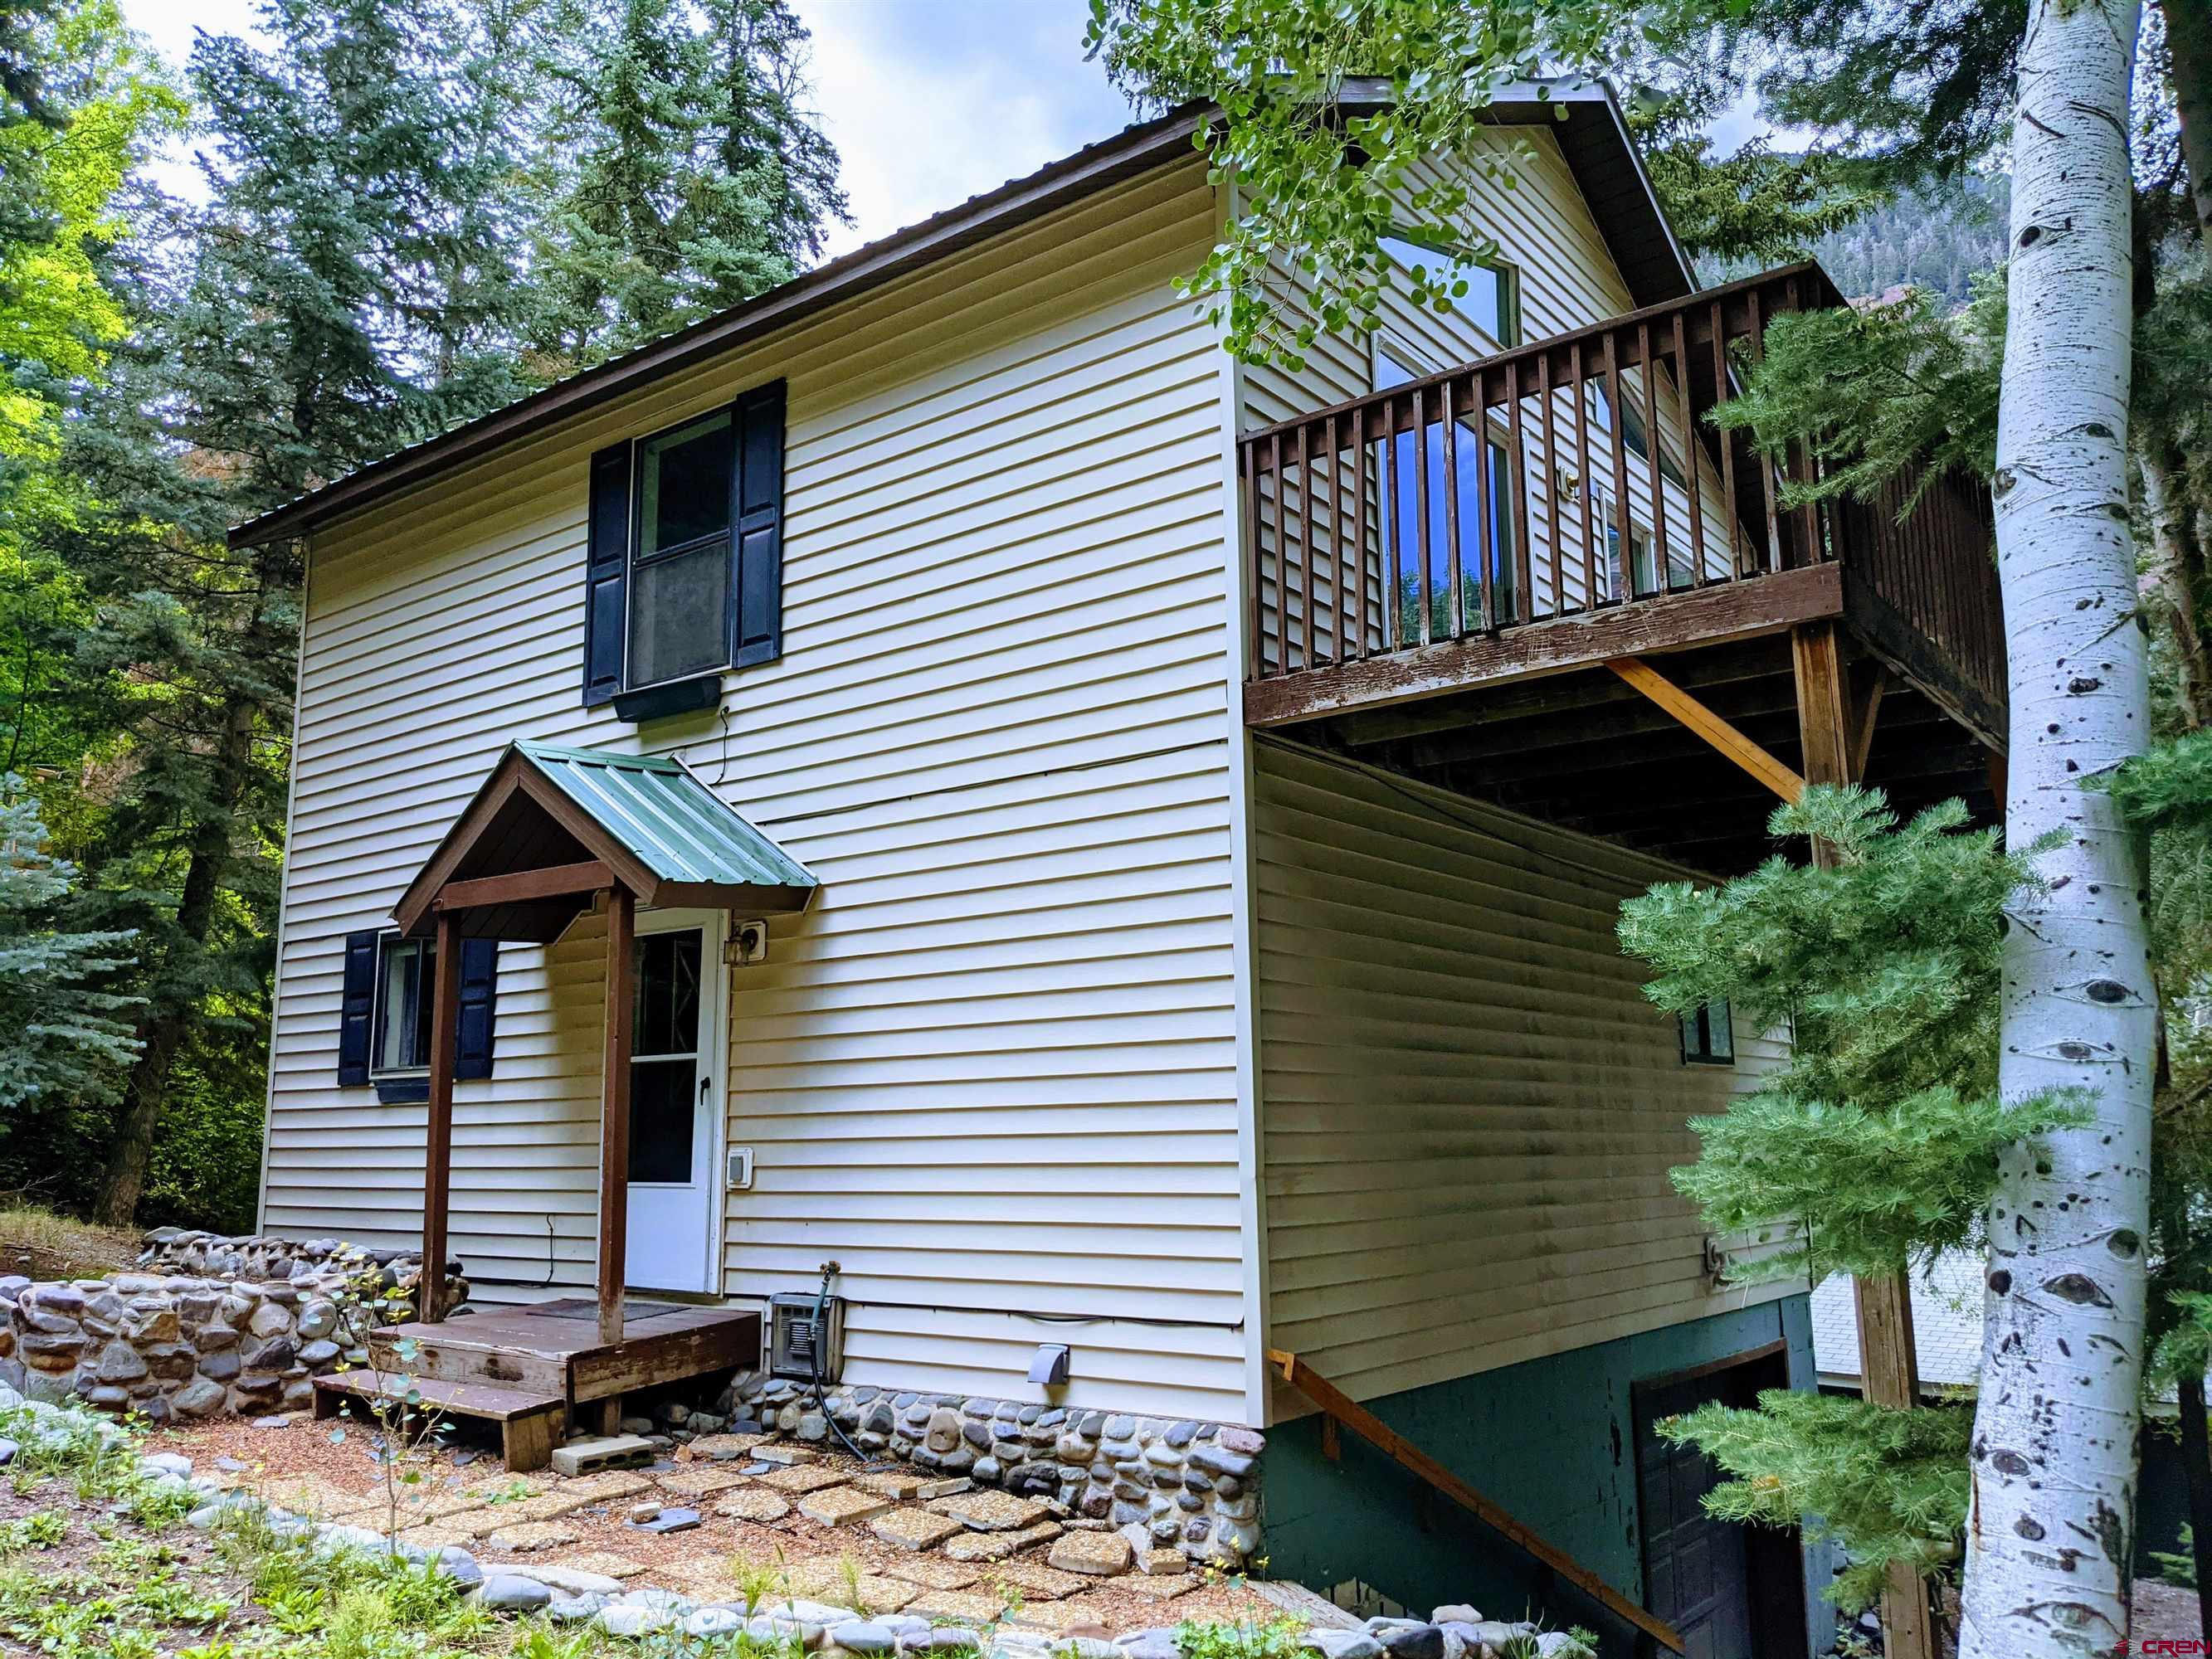 This home is nestled in the pines and aspens on a quiet street and just a 2 minutes drive to the heart of Ouray! Enjoy all that Ouray has to offer and retreat back to this peaceful setting. The river trail is a short walk and is a part of the perimeter trail. You could walk or bike to any Ouray adventure from this location. New luxury vinyl flooring has recently been installed. The vaulted ceiling and large sliding glass doors give the kitchen and family room a nice spacious feel. If you're looking to live or invest in Ouray here is your opportunity! Call for a showing.